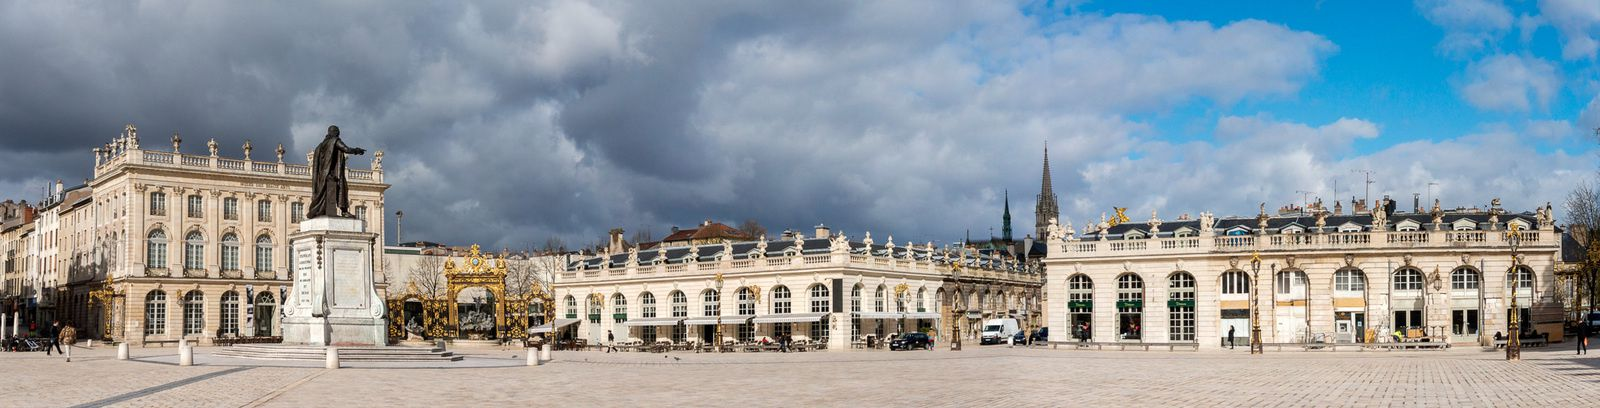 NANCY, la Place Stanislas, 1er avril 2015